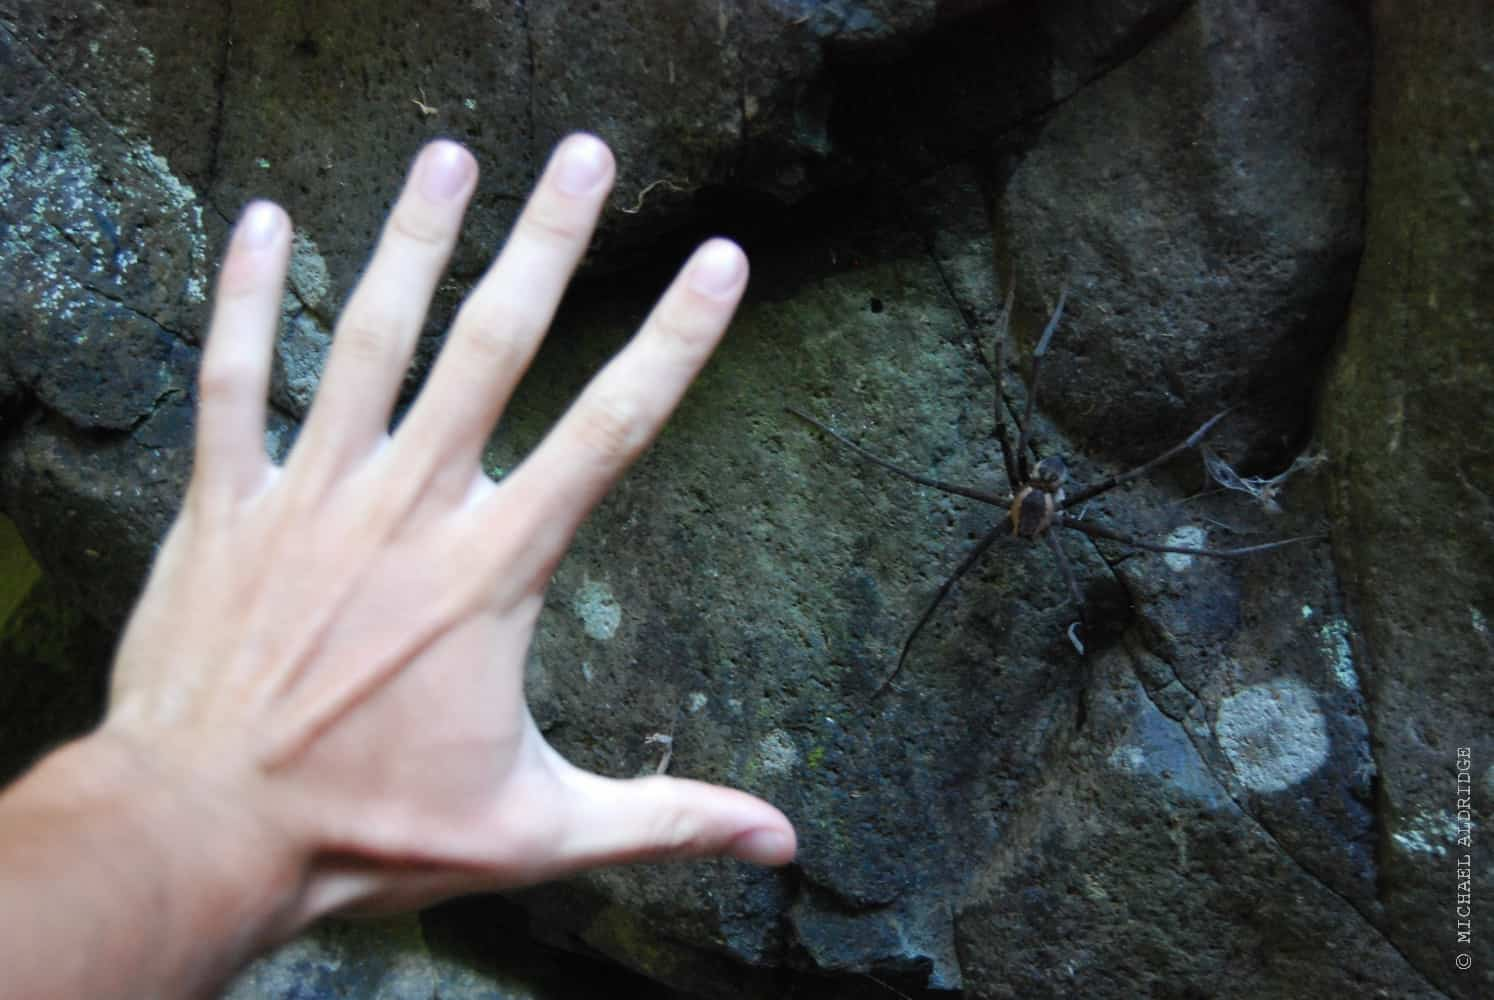 Giant Cave Spiders